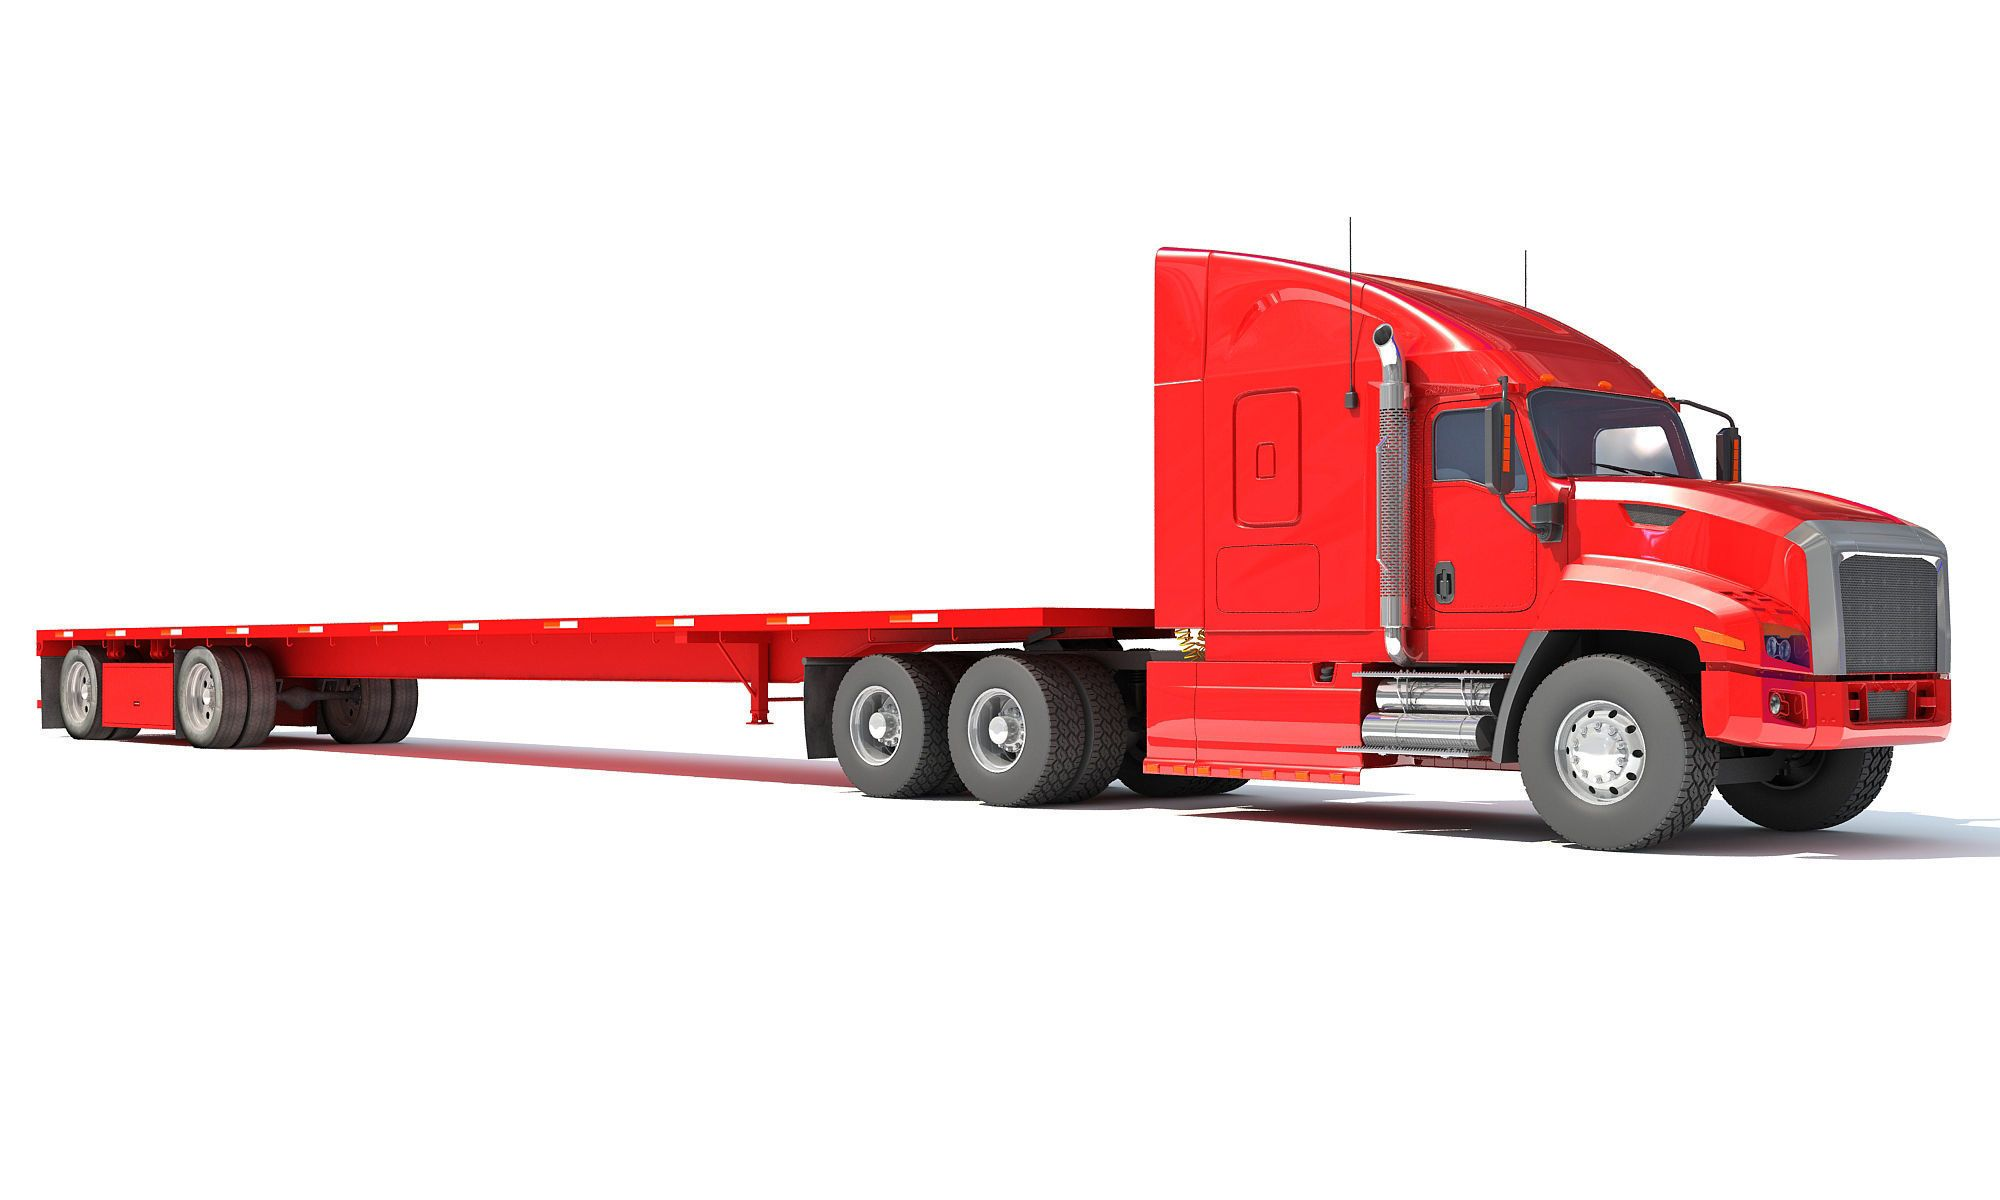 Freightliner Truck With Flatbed Trailer 3d Model In 2020 Flatbed Trailer Freightliner Trucks Trucks